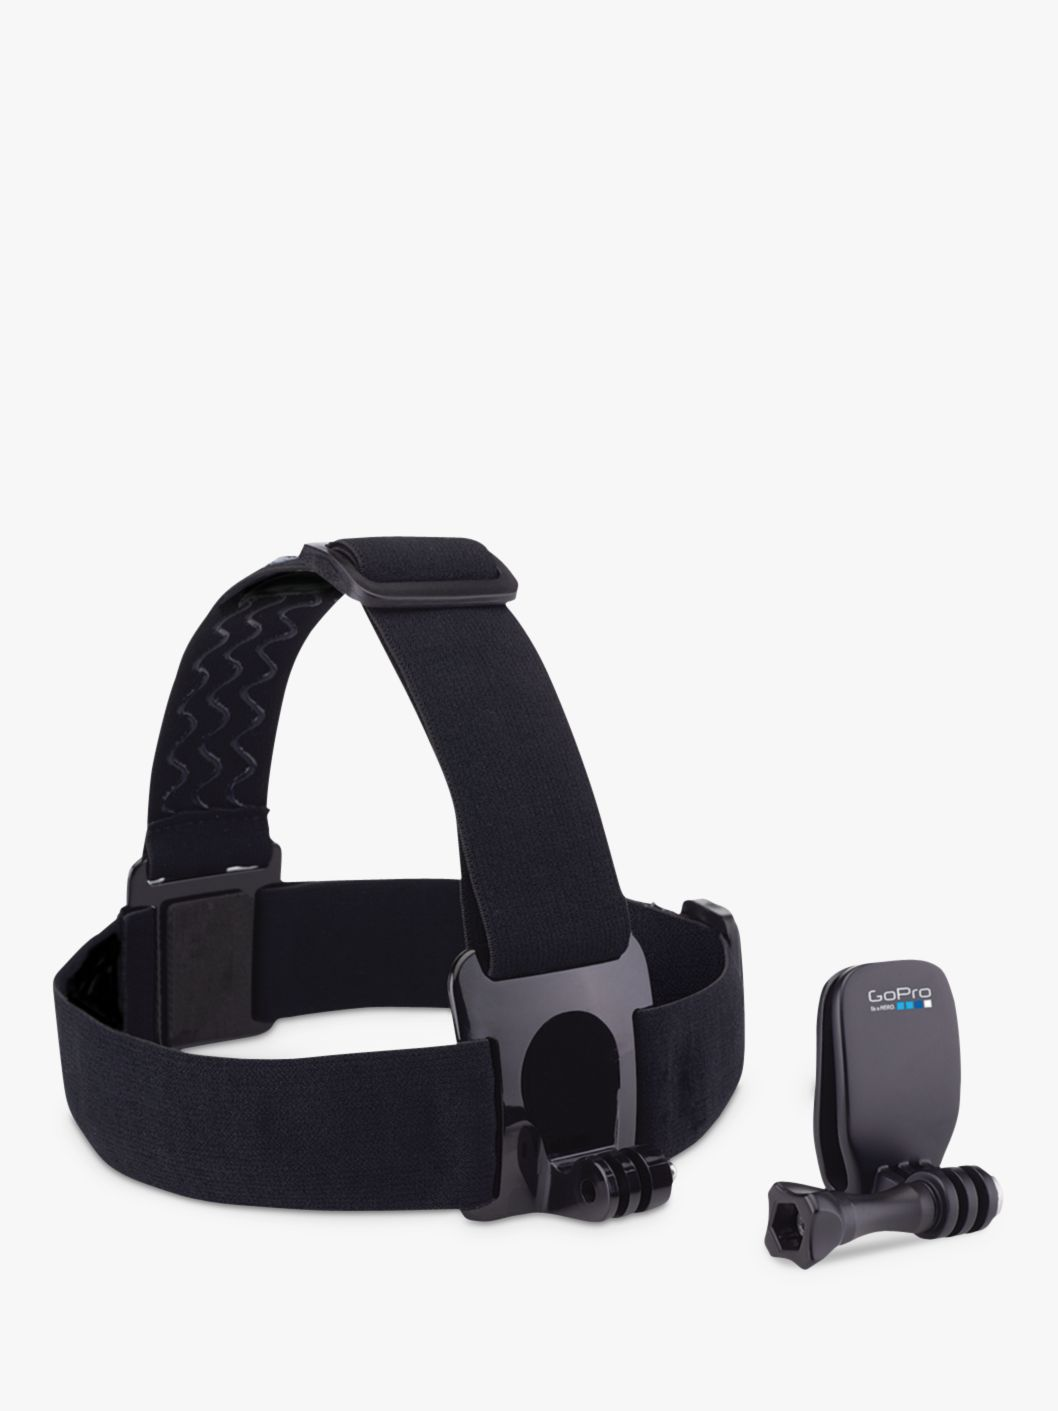 Gopro GoPro Head Strap Mount and QuickClip for All GoPros